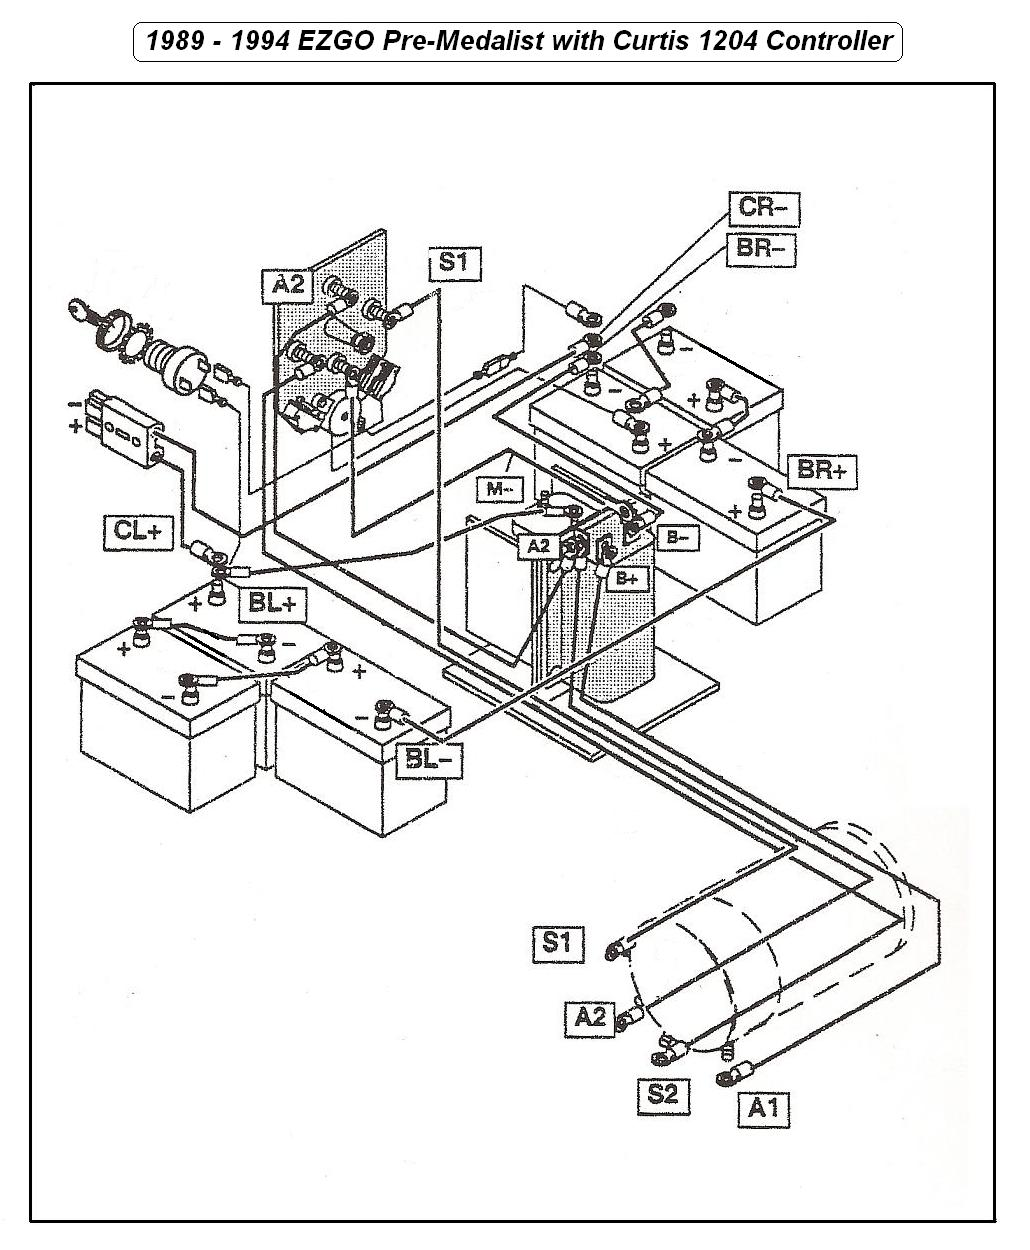 1982 Ezgo Electric Golf Cart Wiring Diagram Third Level Club Car 4 Battery Free Picture 3 Wheel Todays Ez